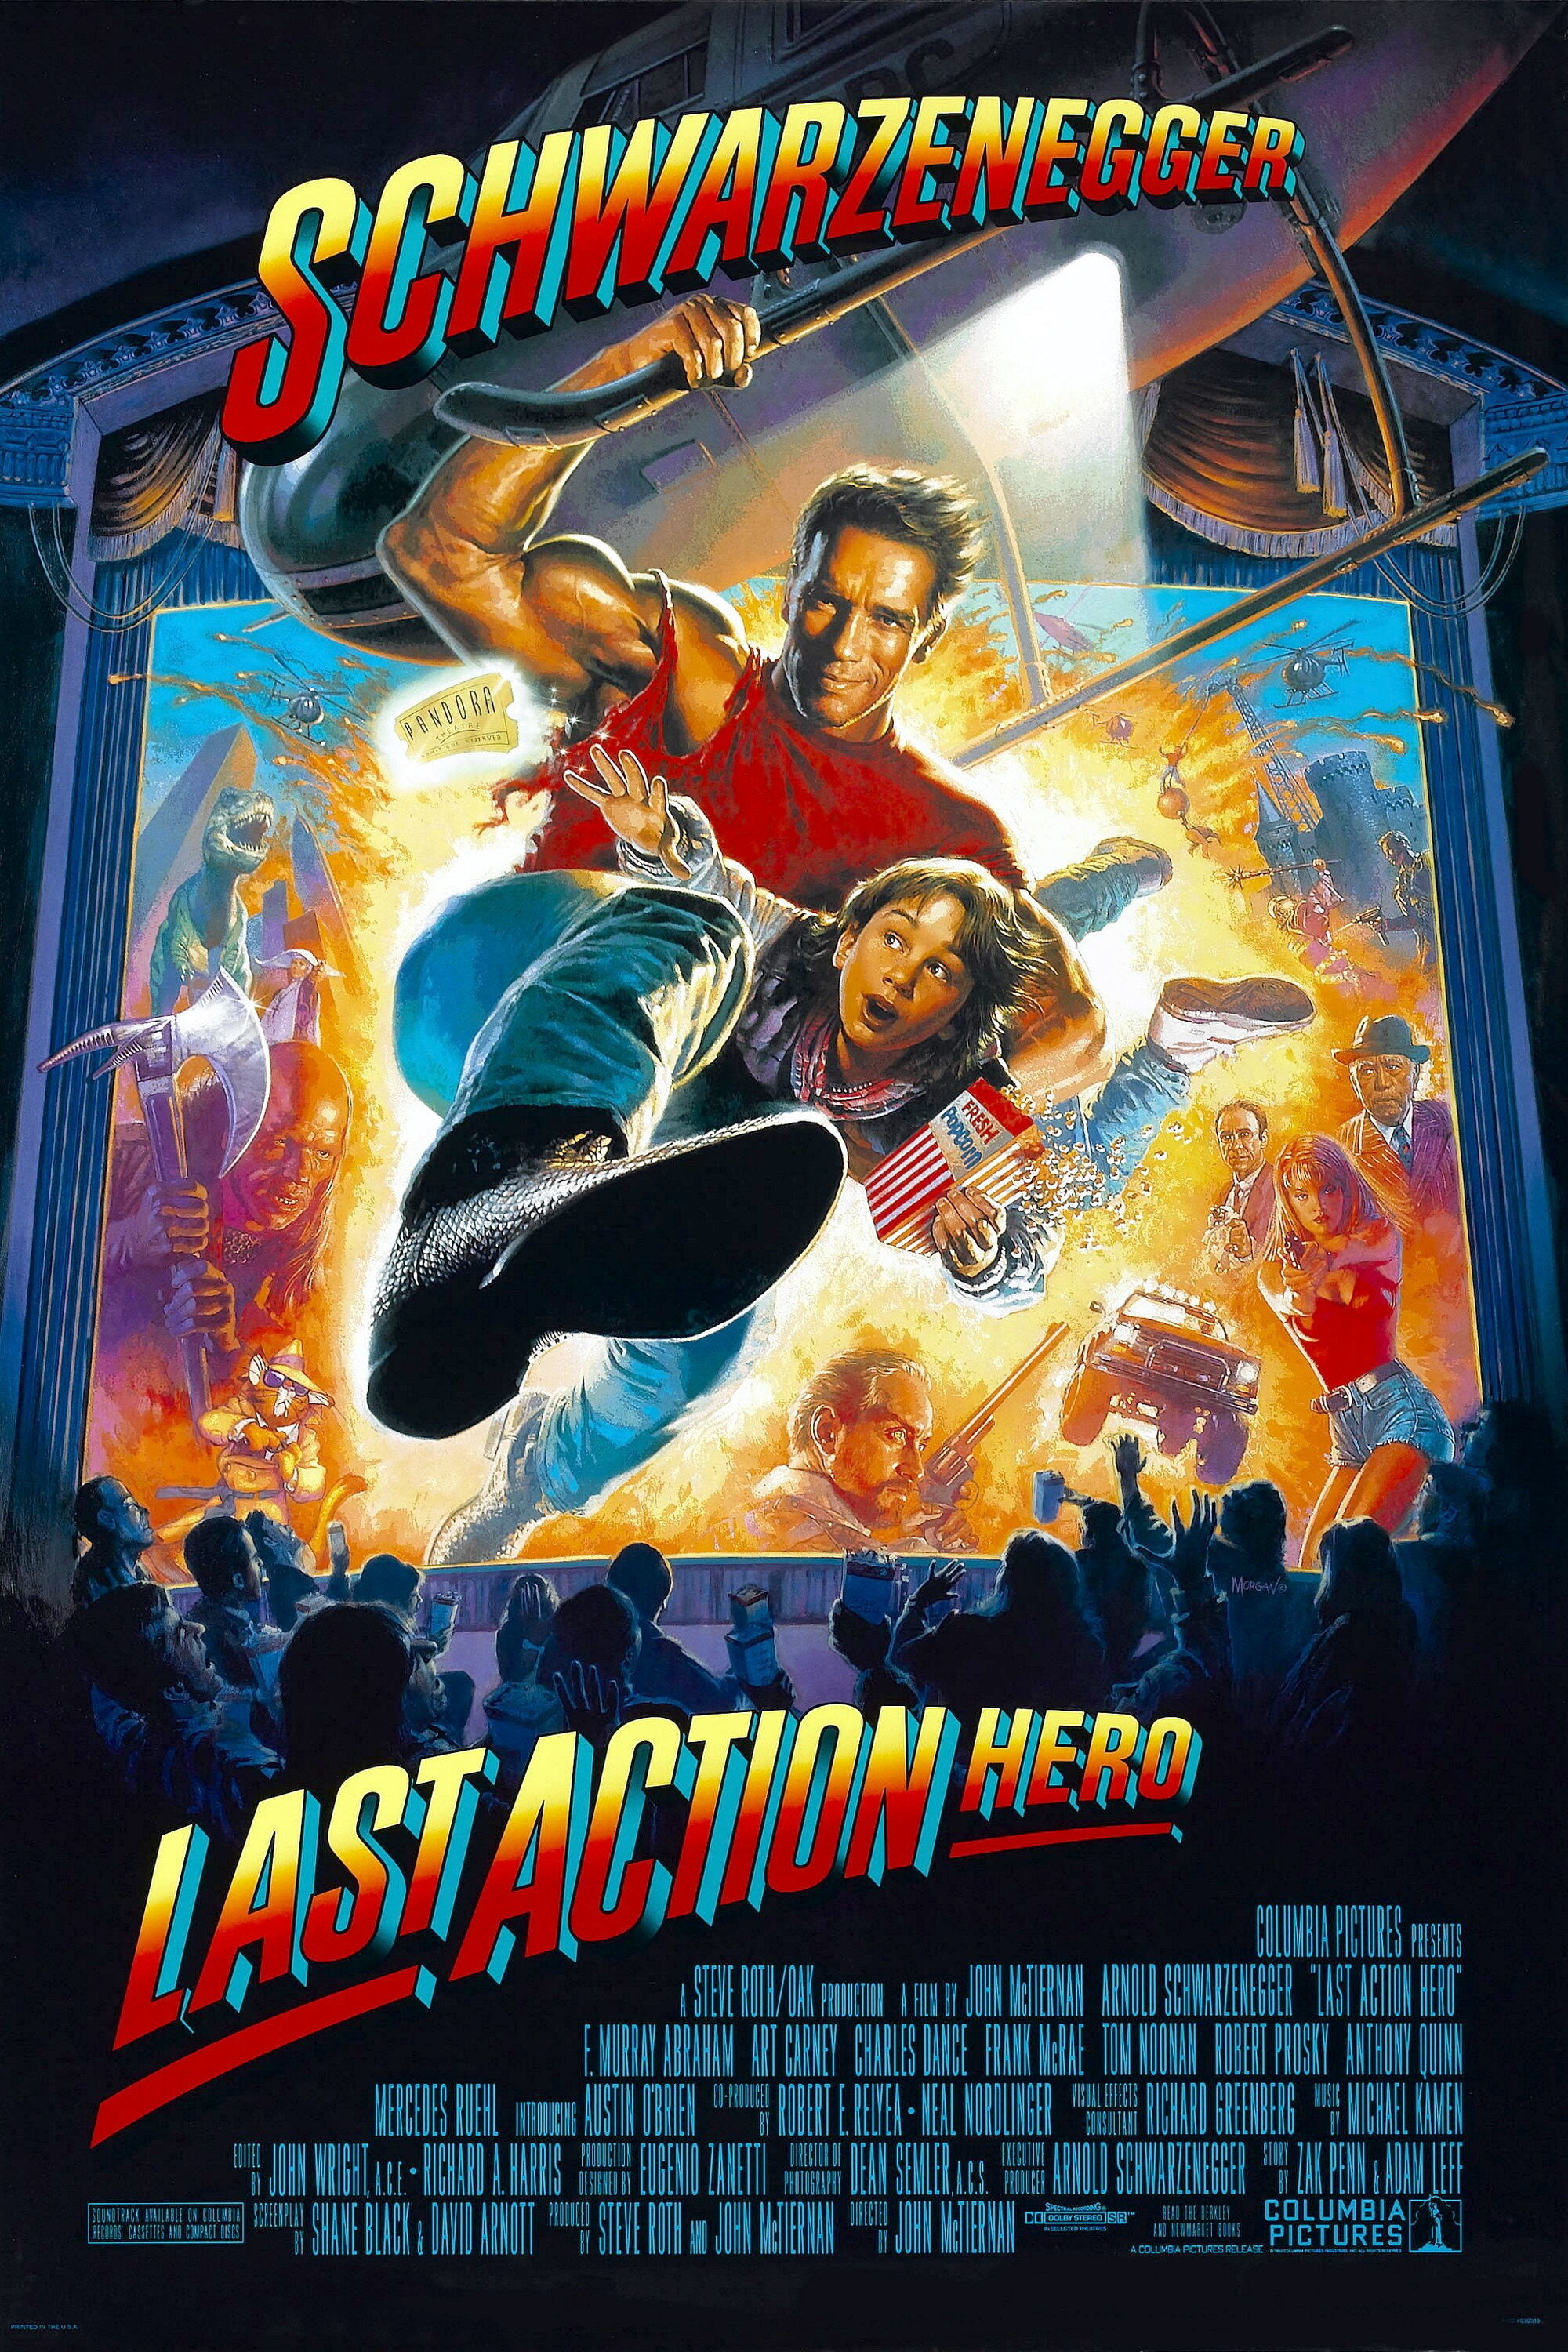 Last Action Hero (1993) - Directed By: John McTiernanStarring: Arnold Schwarzenegger, F. Murray Abraham, Art Carney, Charles Dance, Austin O'BrienRated: PG-13Run Time: 2h 10mTMM Score: 5Strengths: Arnold, Nostalgia, MetaWeakness: Length, Kid Acting